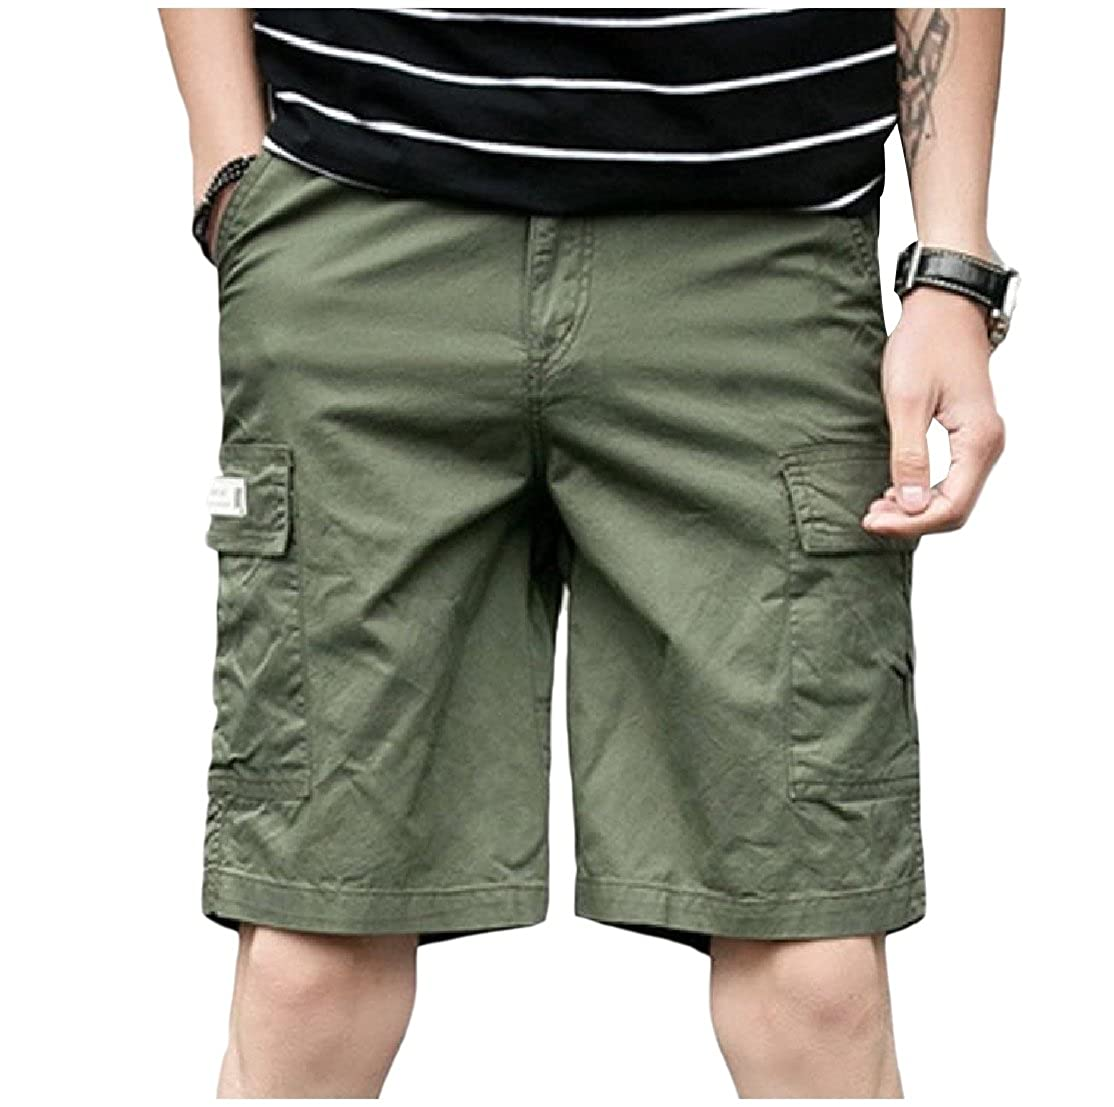 YUNY Mens Big and Tall Straight-Fit Thin Solid Cargo Half Pants Army Green XS